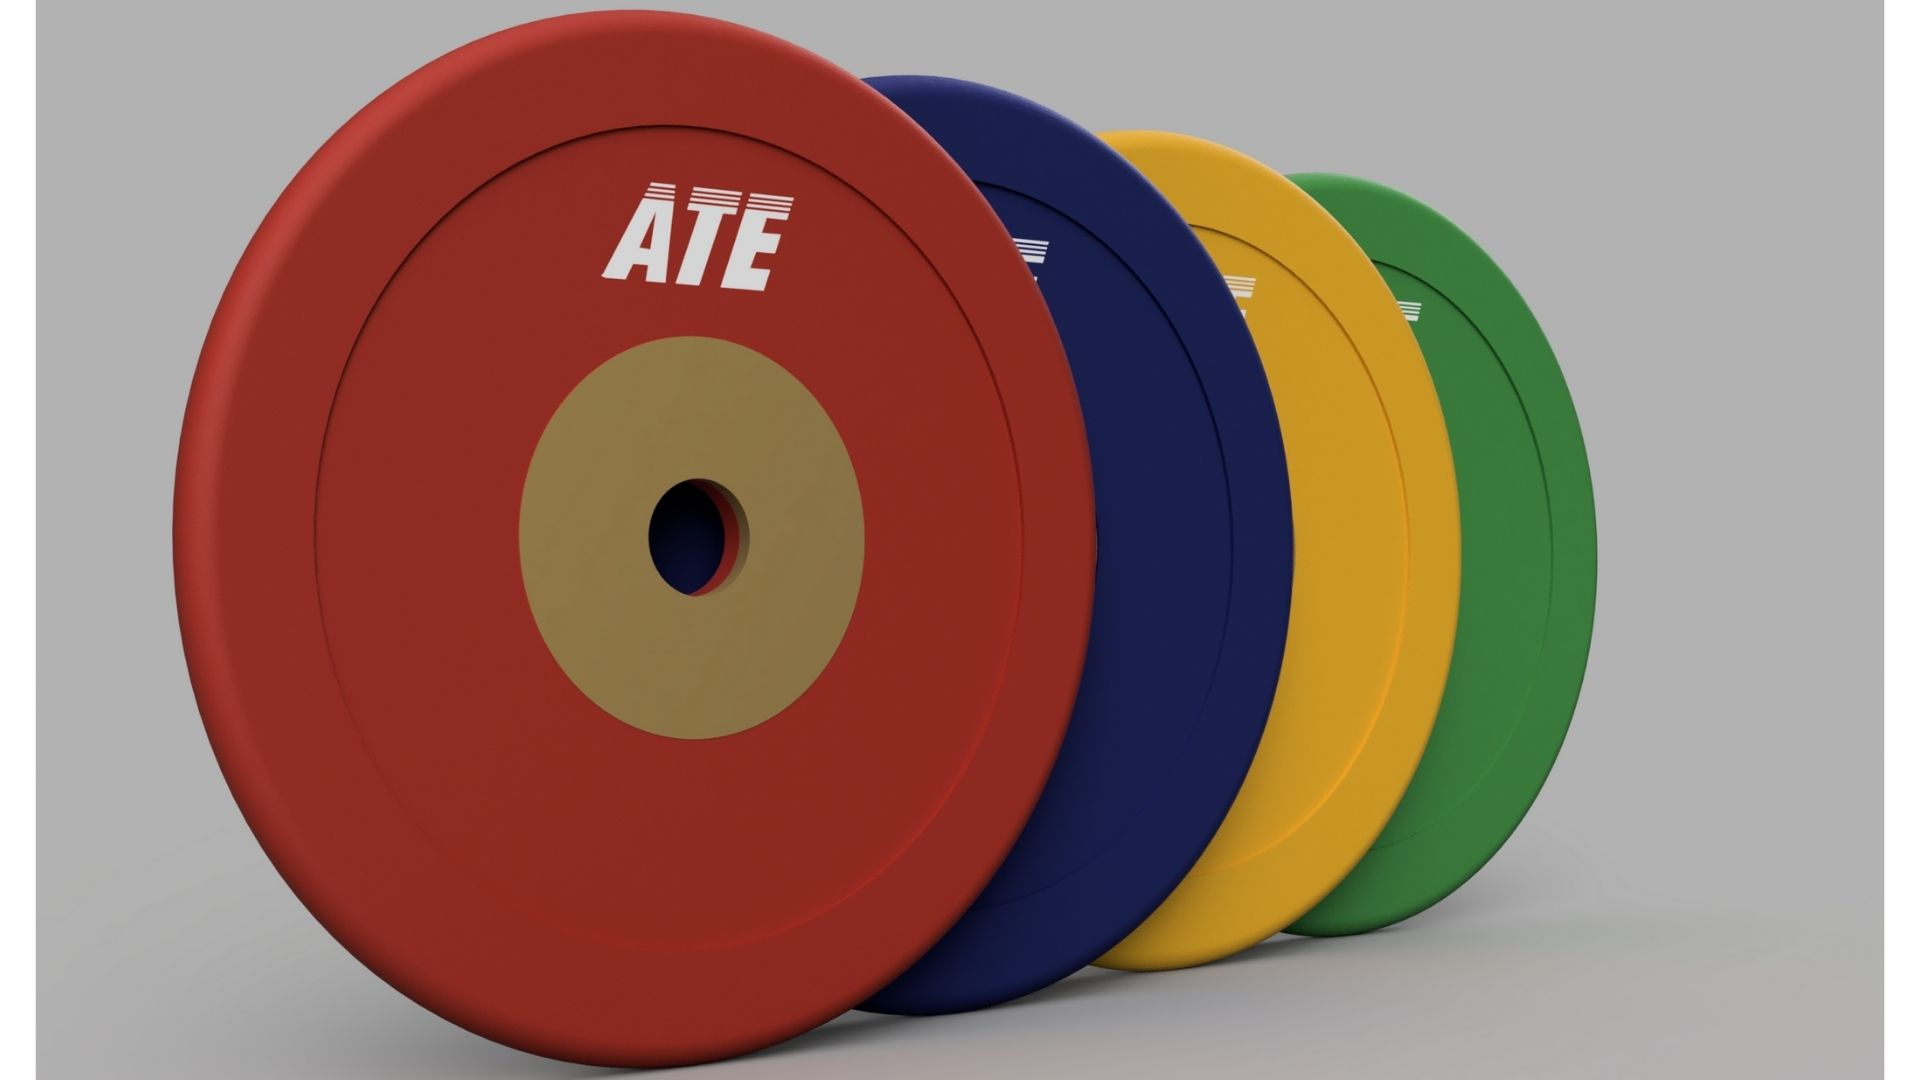 ATE Competition Rubber Weightlifting Plates